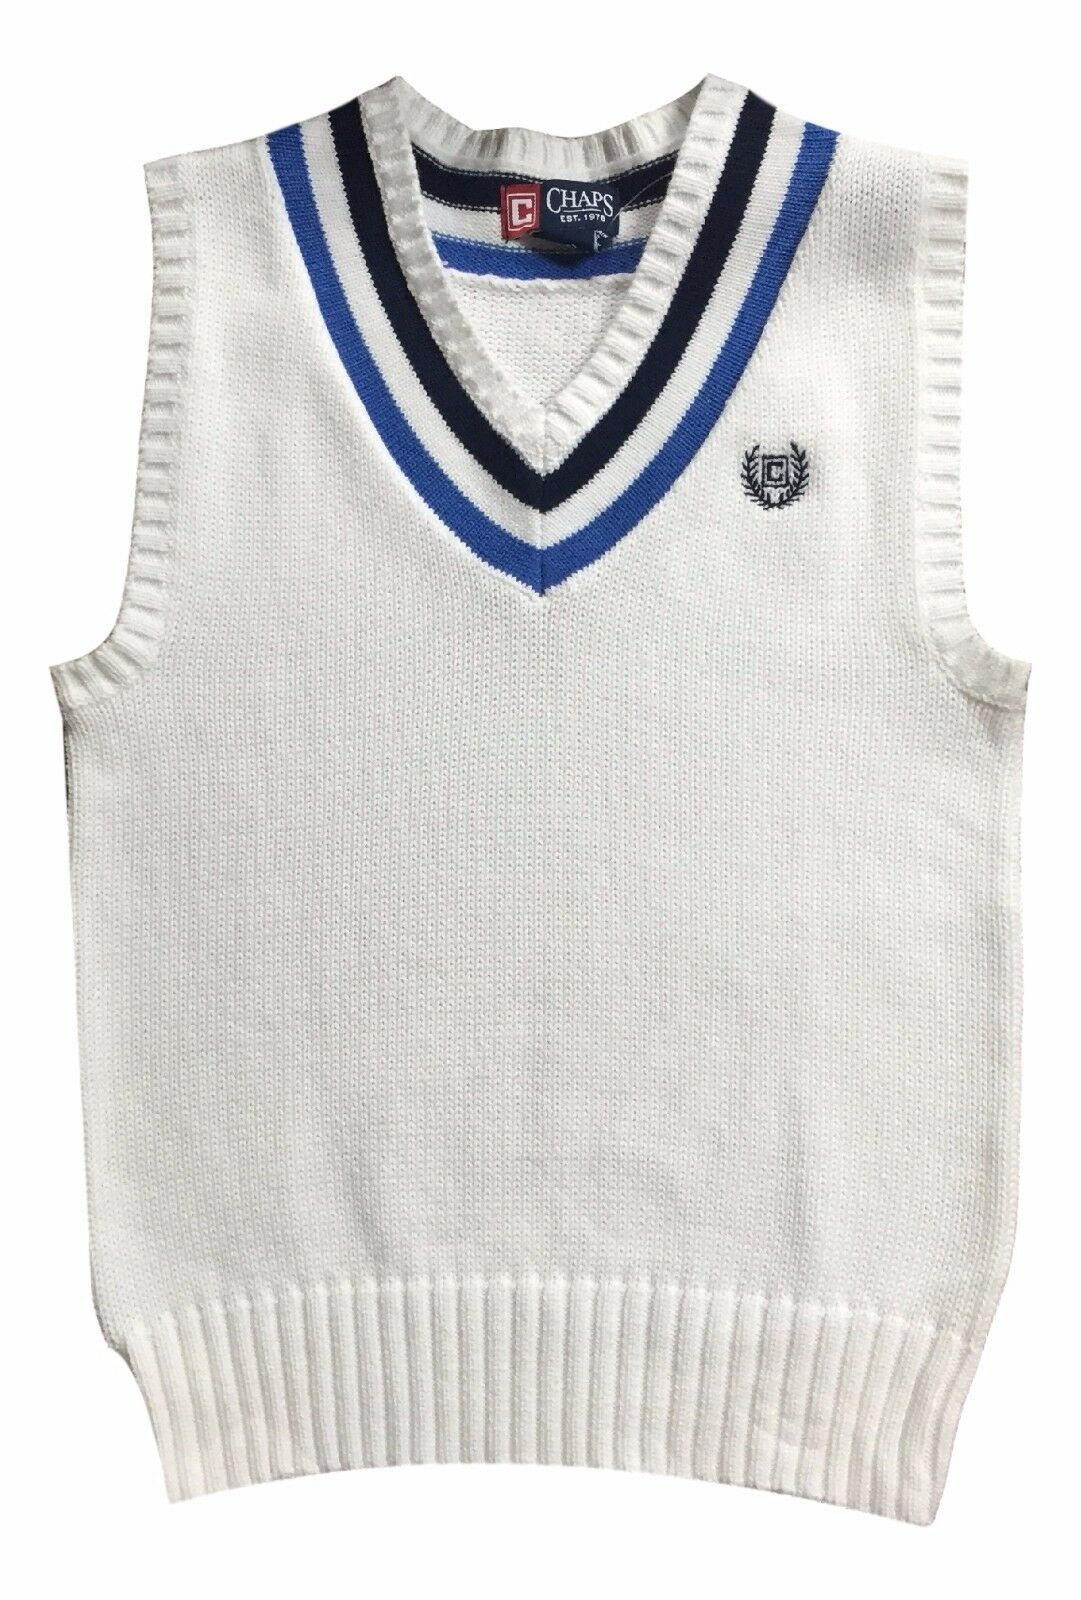 Chaps Boy's 24 Months White V-neck Sweater Vest Cable Knit Top | eBay